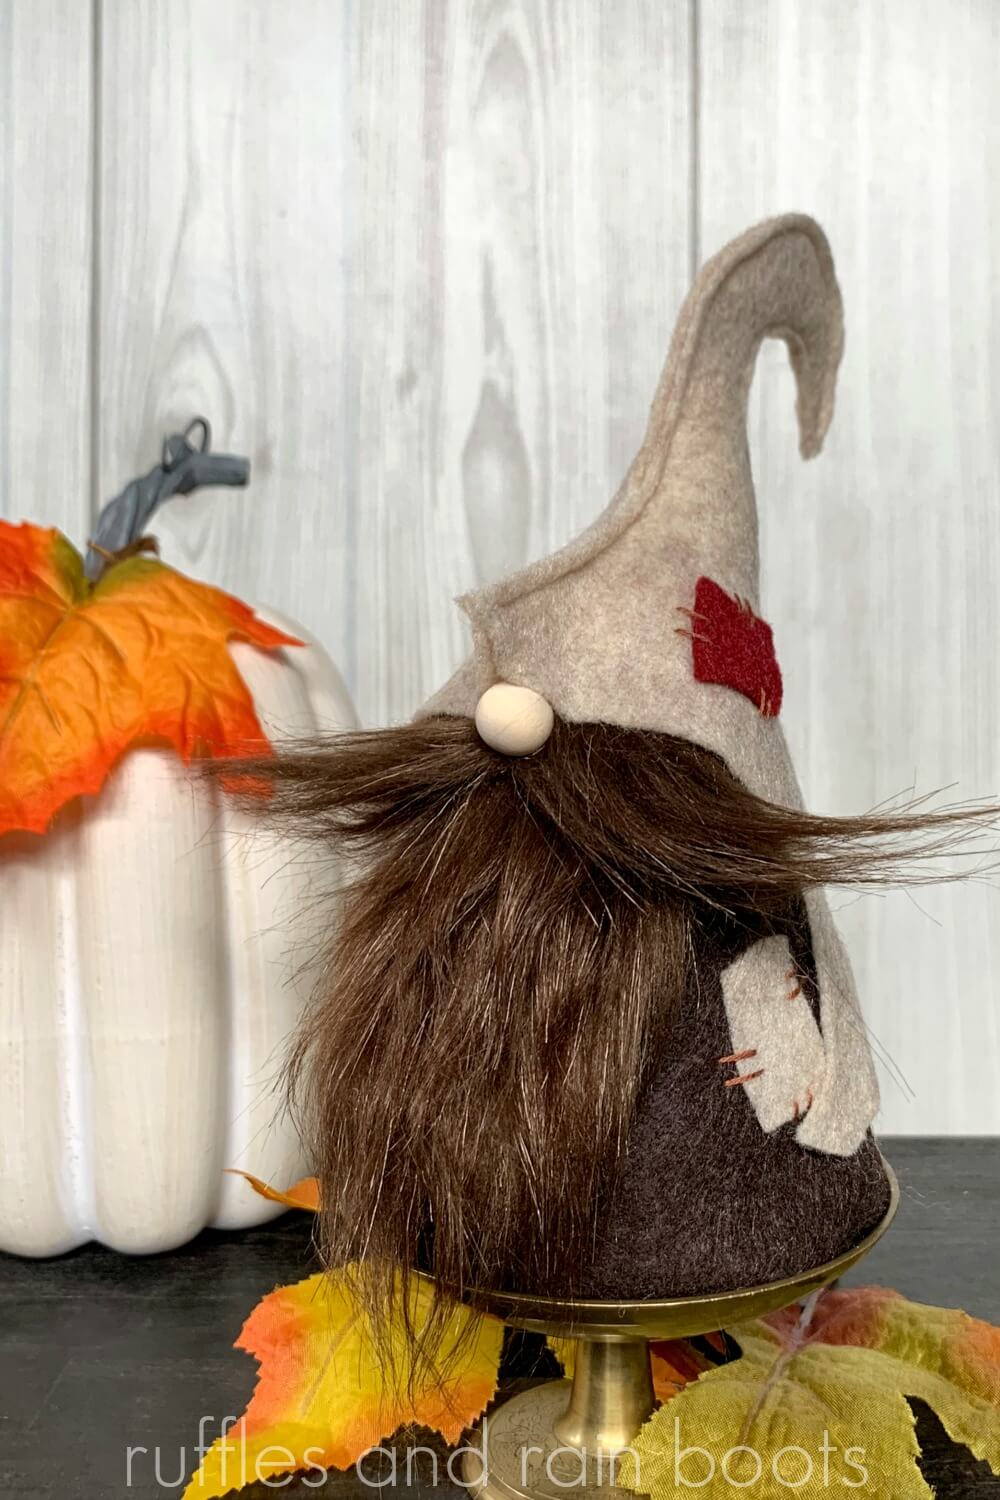 fall gnome made from felt and faux fur styled in front of a pumpkin with fall leaves on a wooden table with shiplap wall